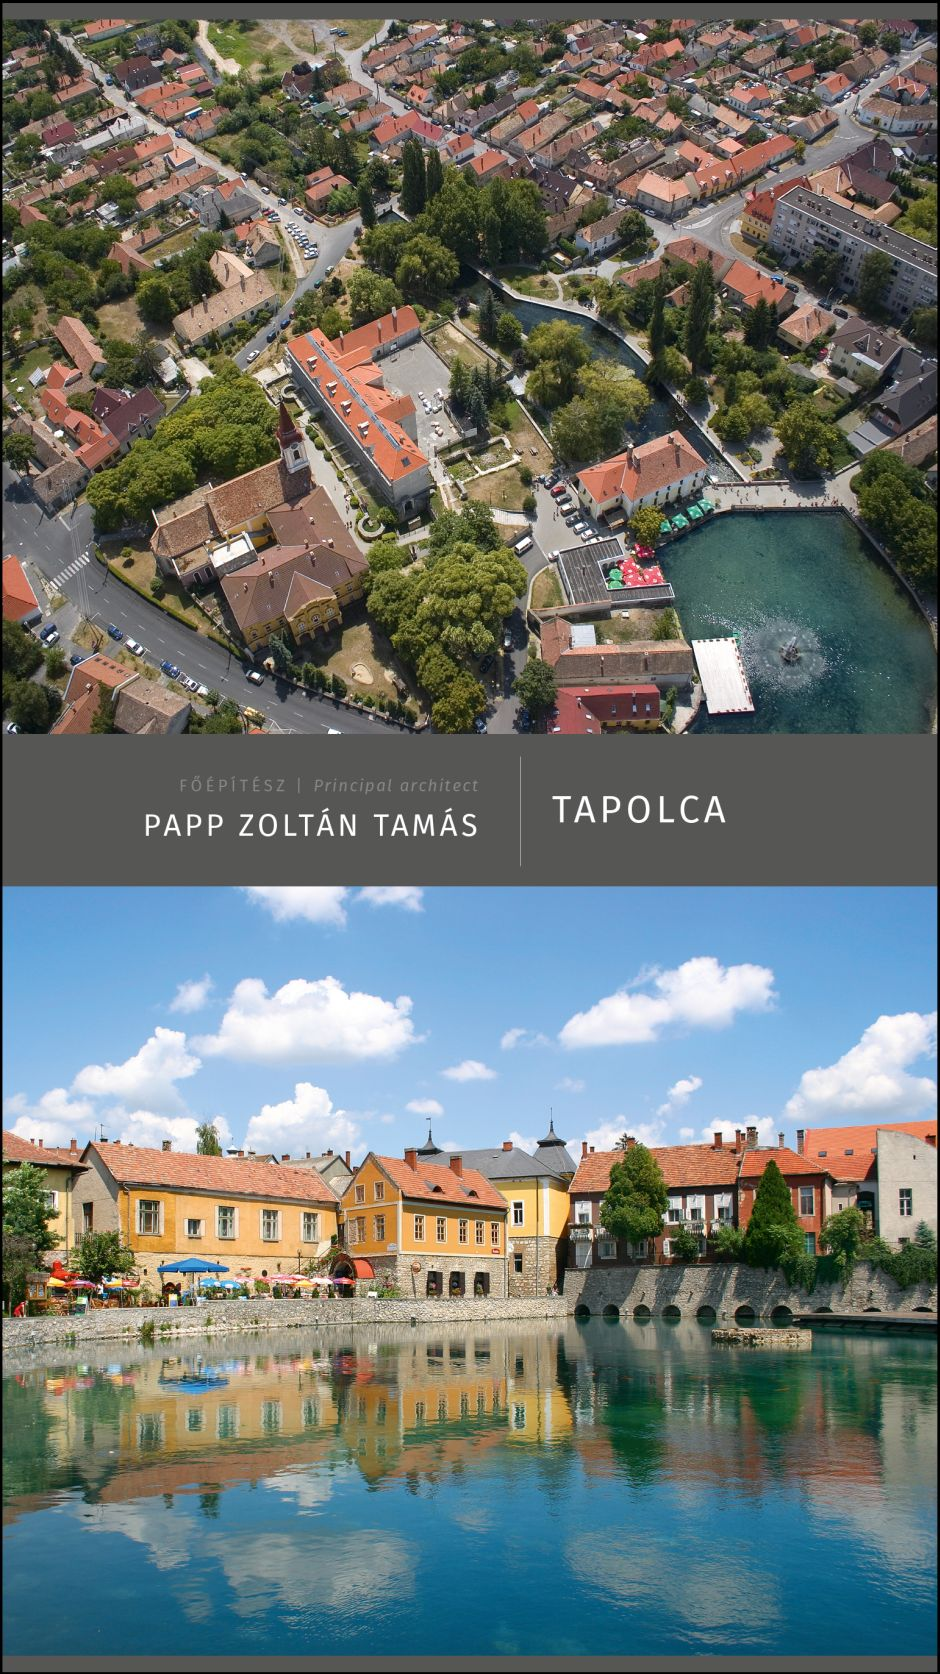 tablo_tapolca